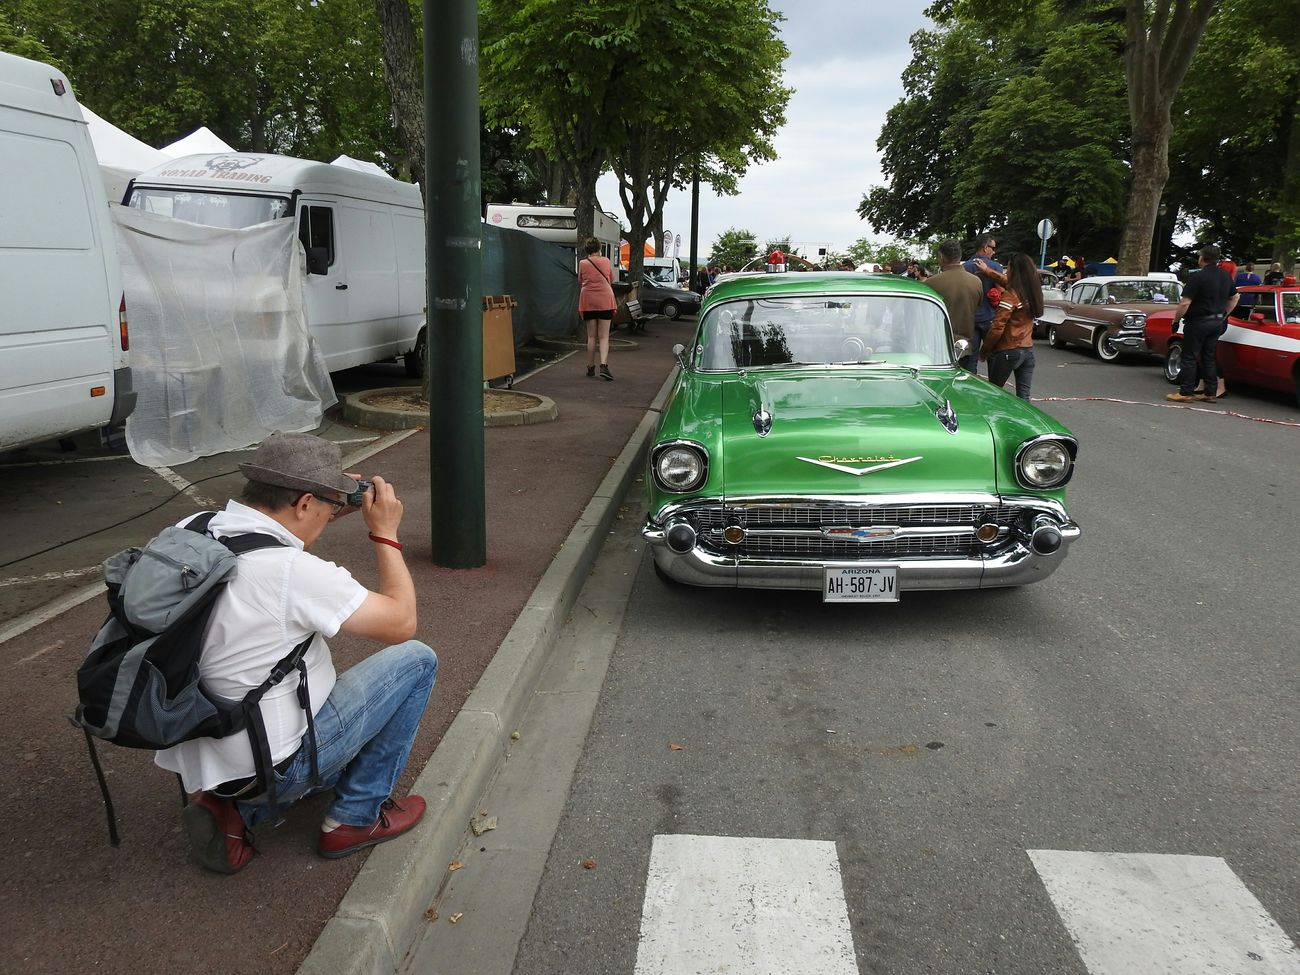 Photographing Photographers Rock And Cars Festival Cadillac Cars Old Car Lavaur